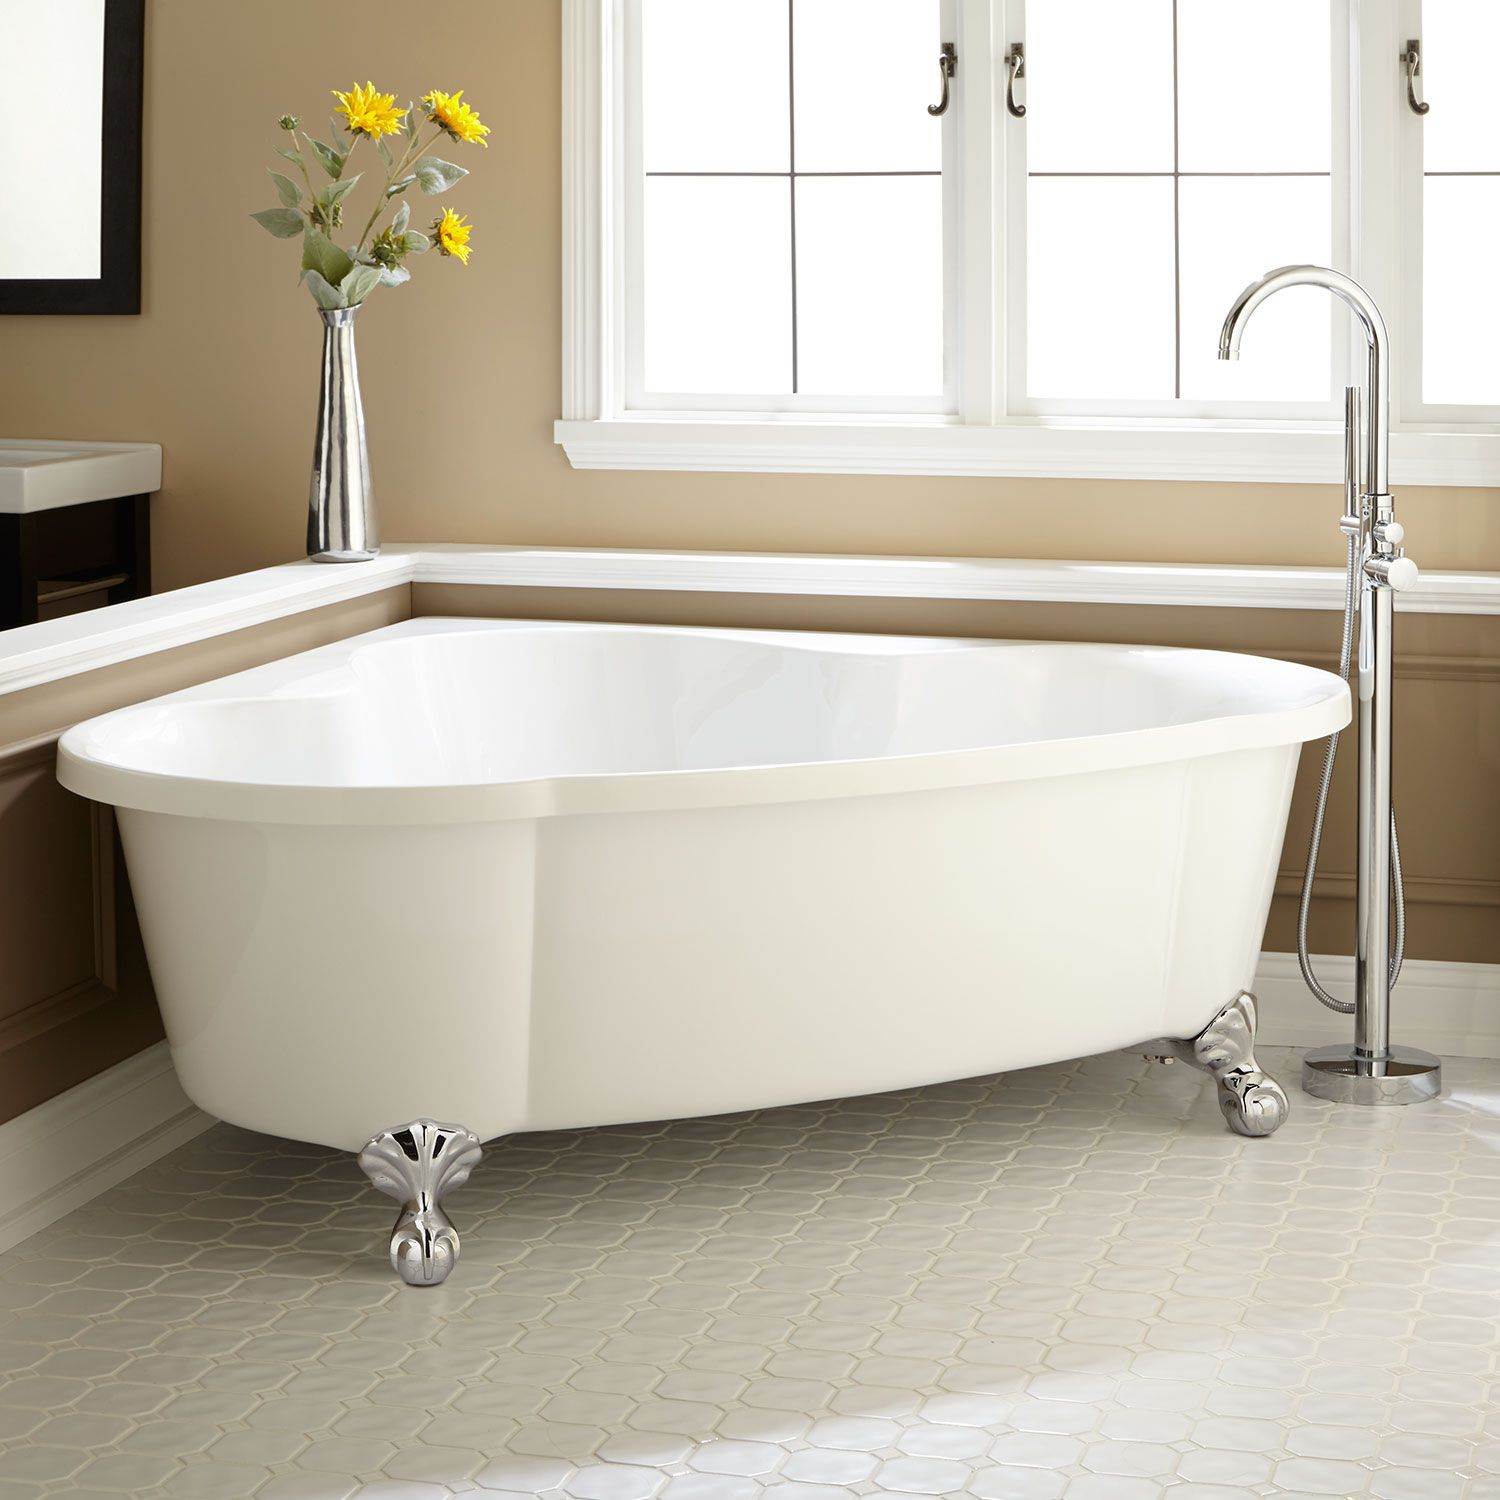 Add A Contemporary Touch To Your Bathroom With The Talia Corner Acrylic Tub.  Perfect For A Master Bath Suite Or Guest Bath, This Tub Rests On Ball U0026  Claw ...